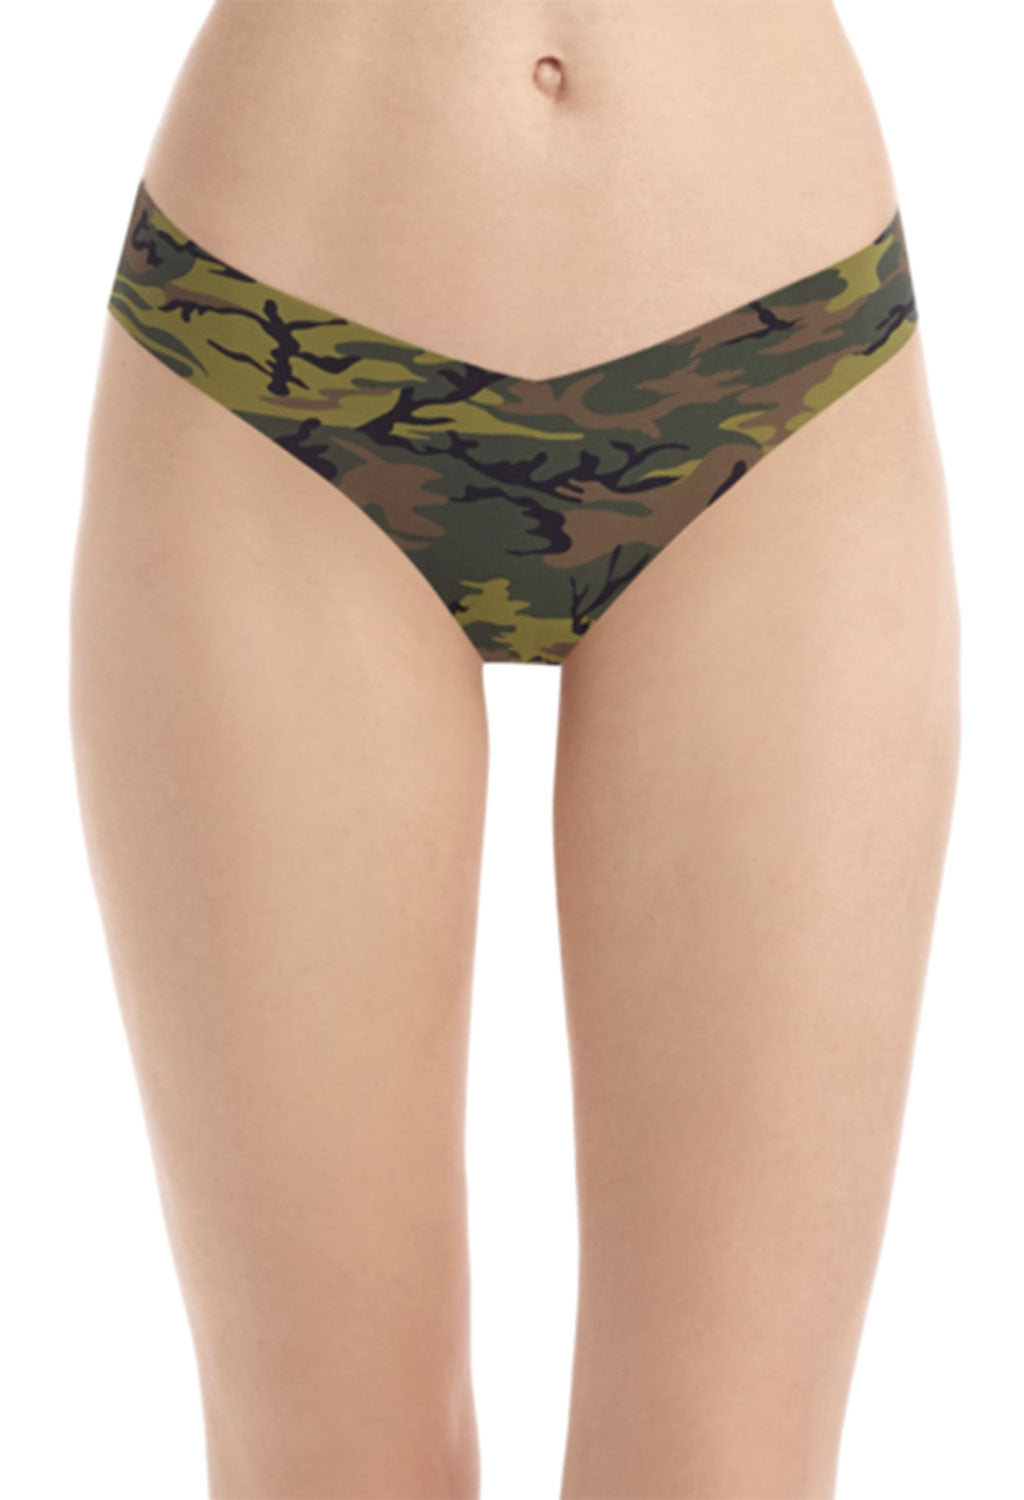 Commando Thong Underwear, Camo